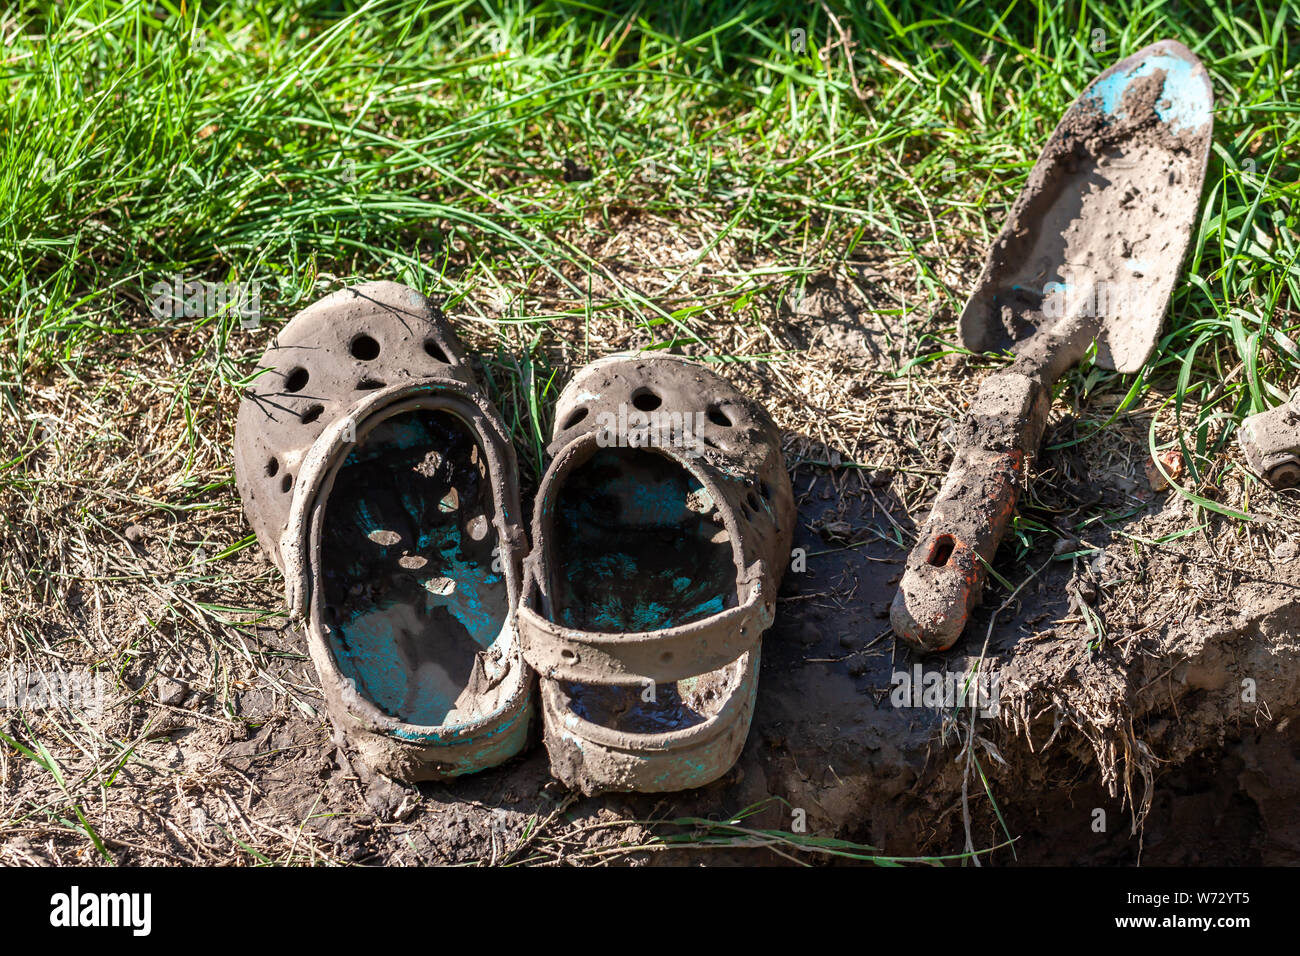 Garden clogs and shovel standing on the mud. Stock Photo